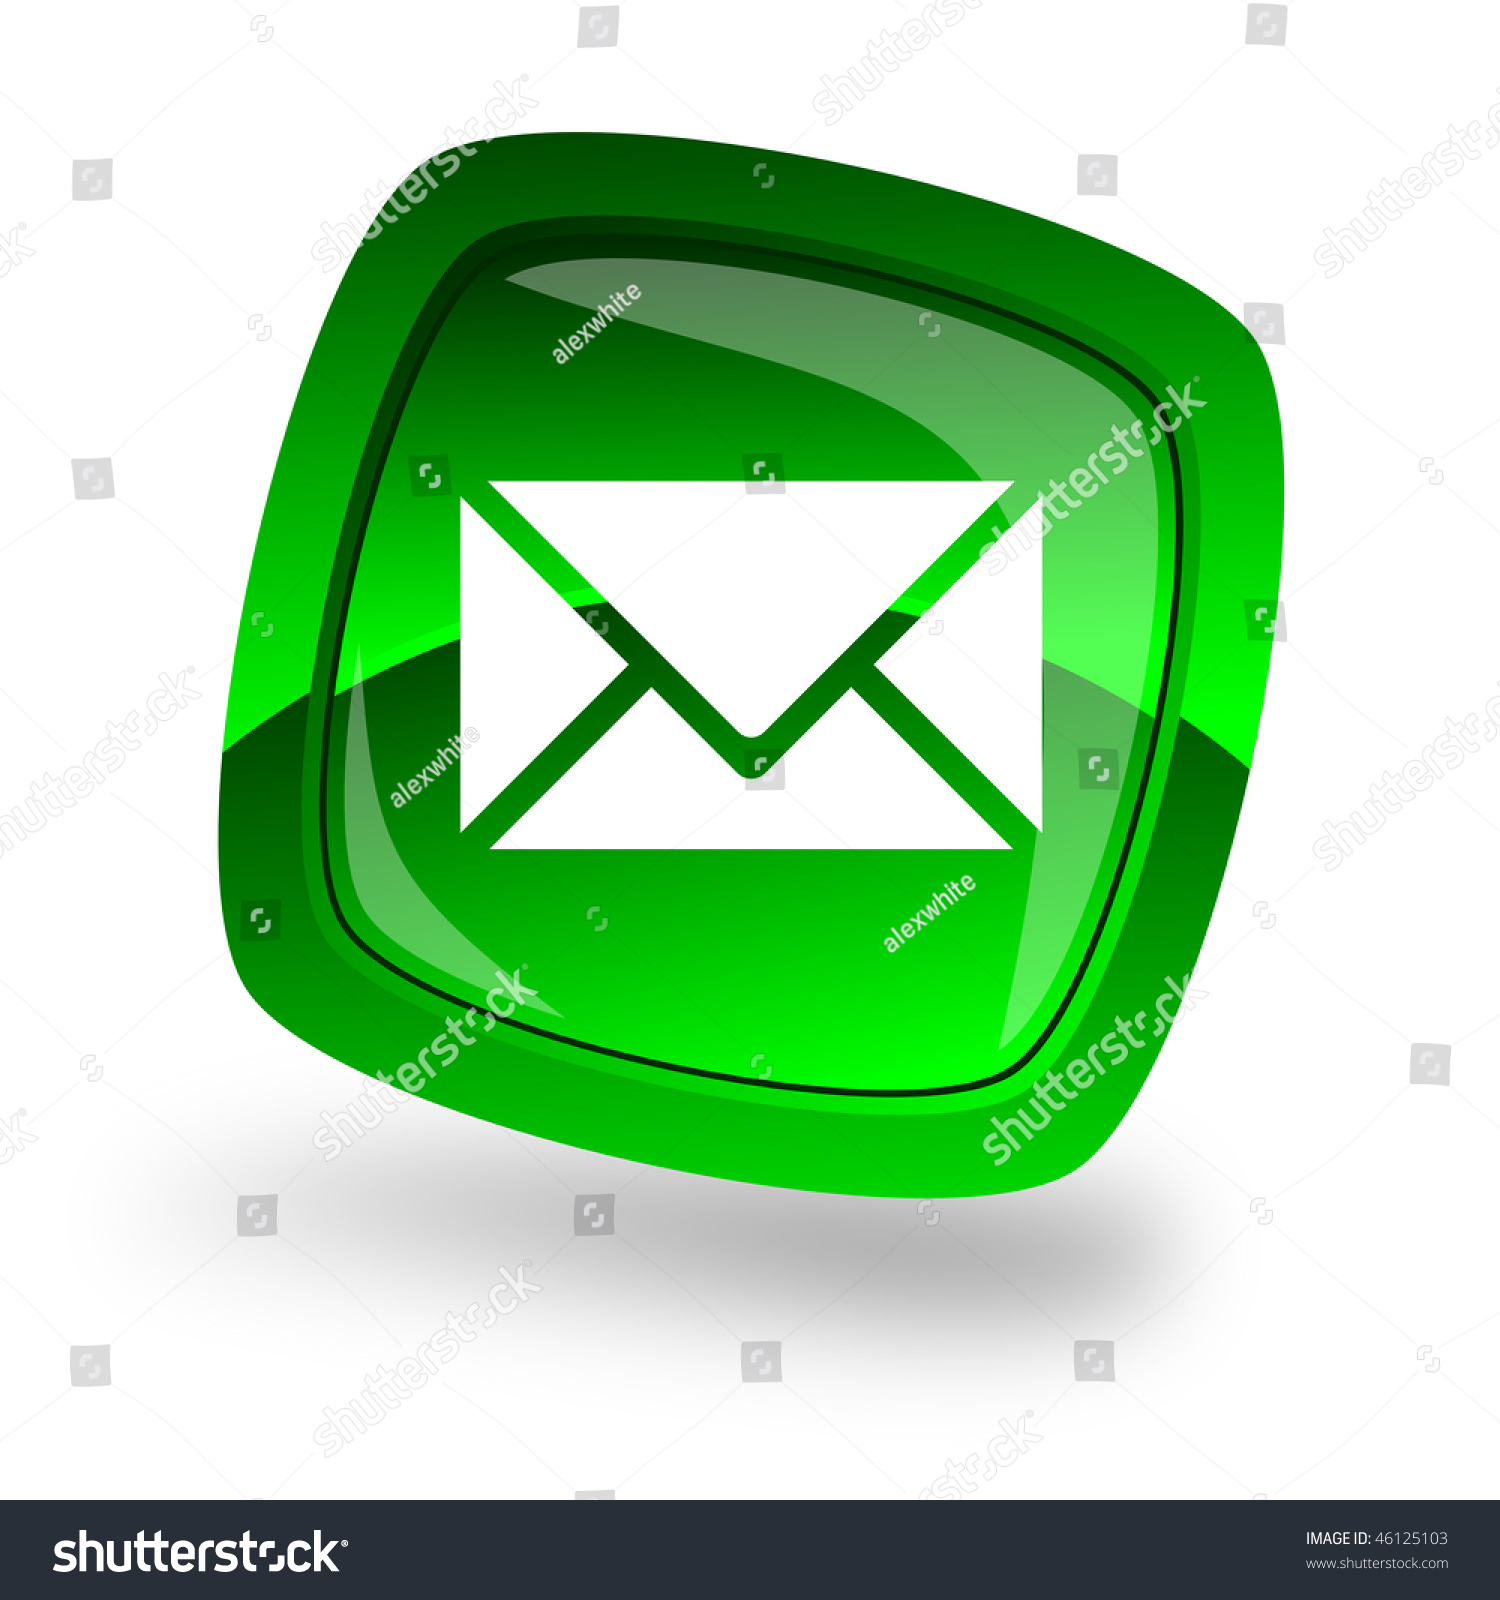 Email internet icon stock illustration 46125103 shutterstock e mail internet icon biocorpaavc